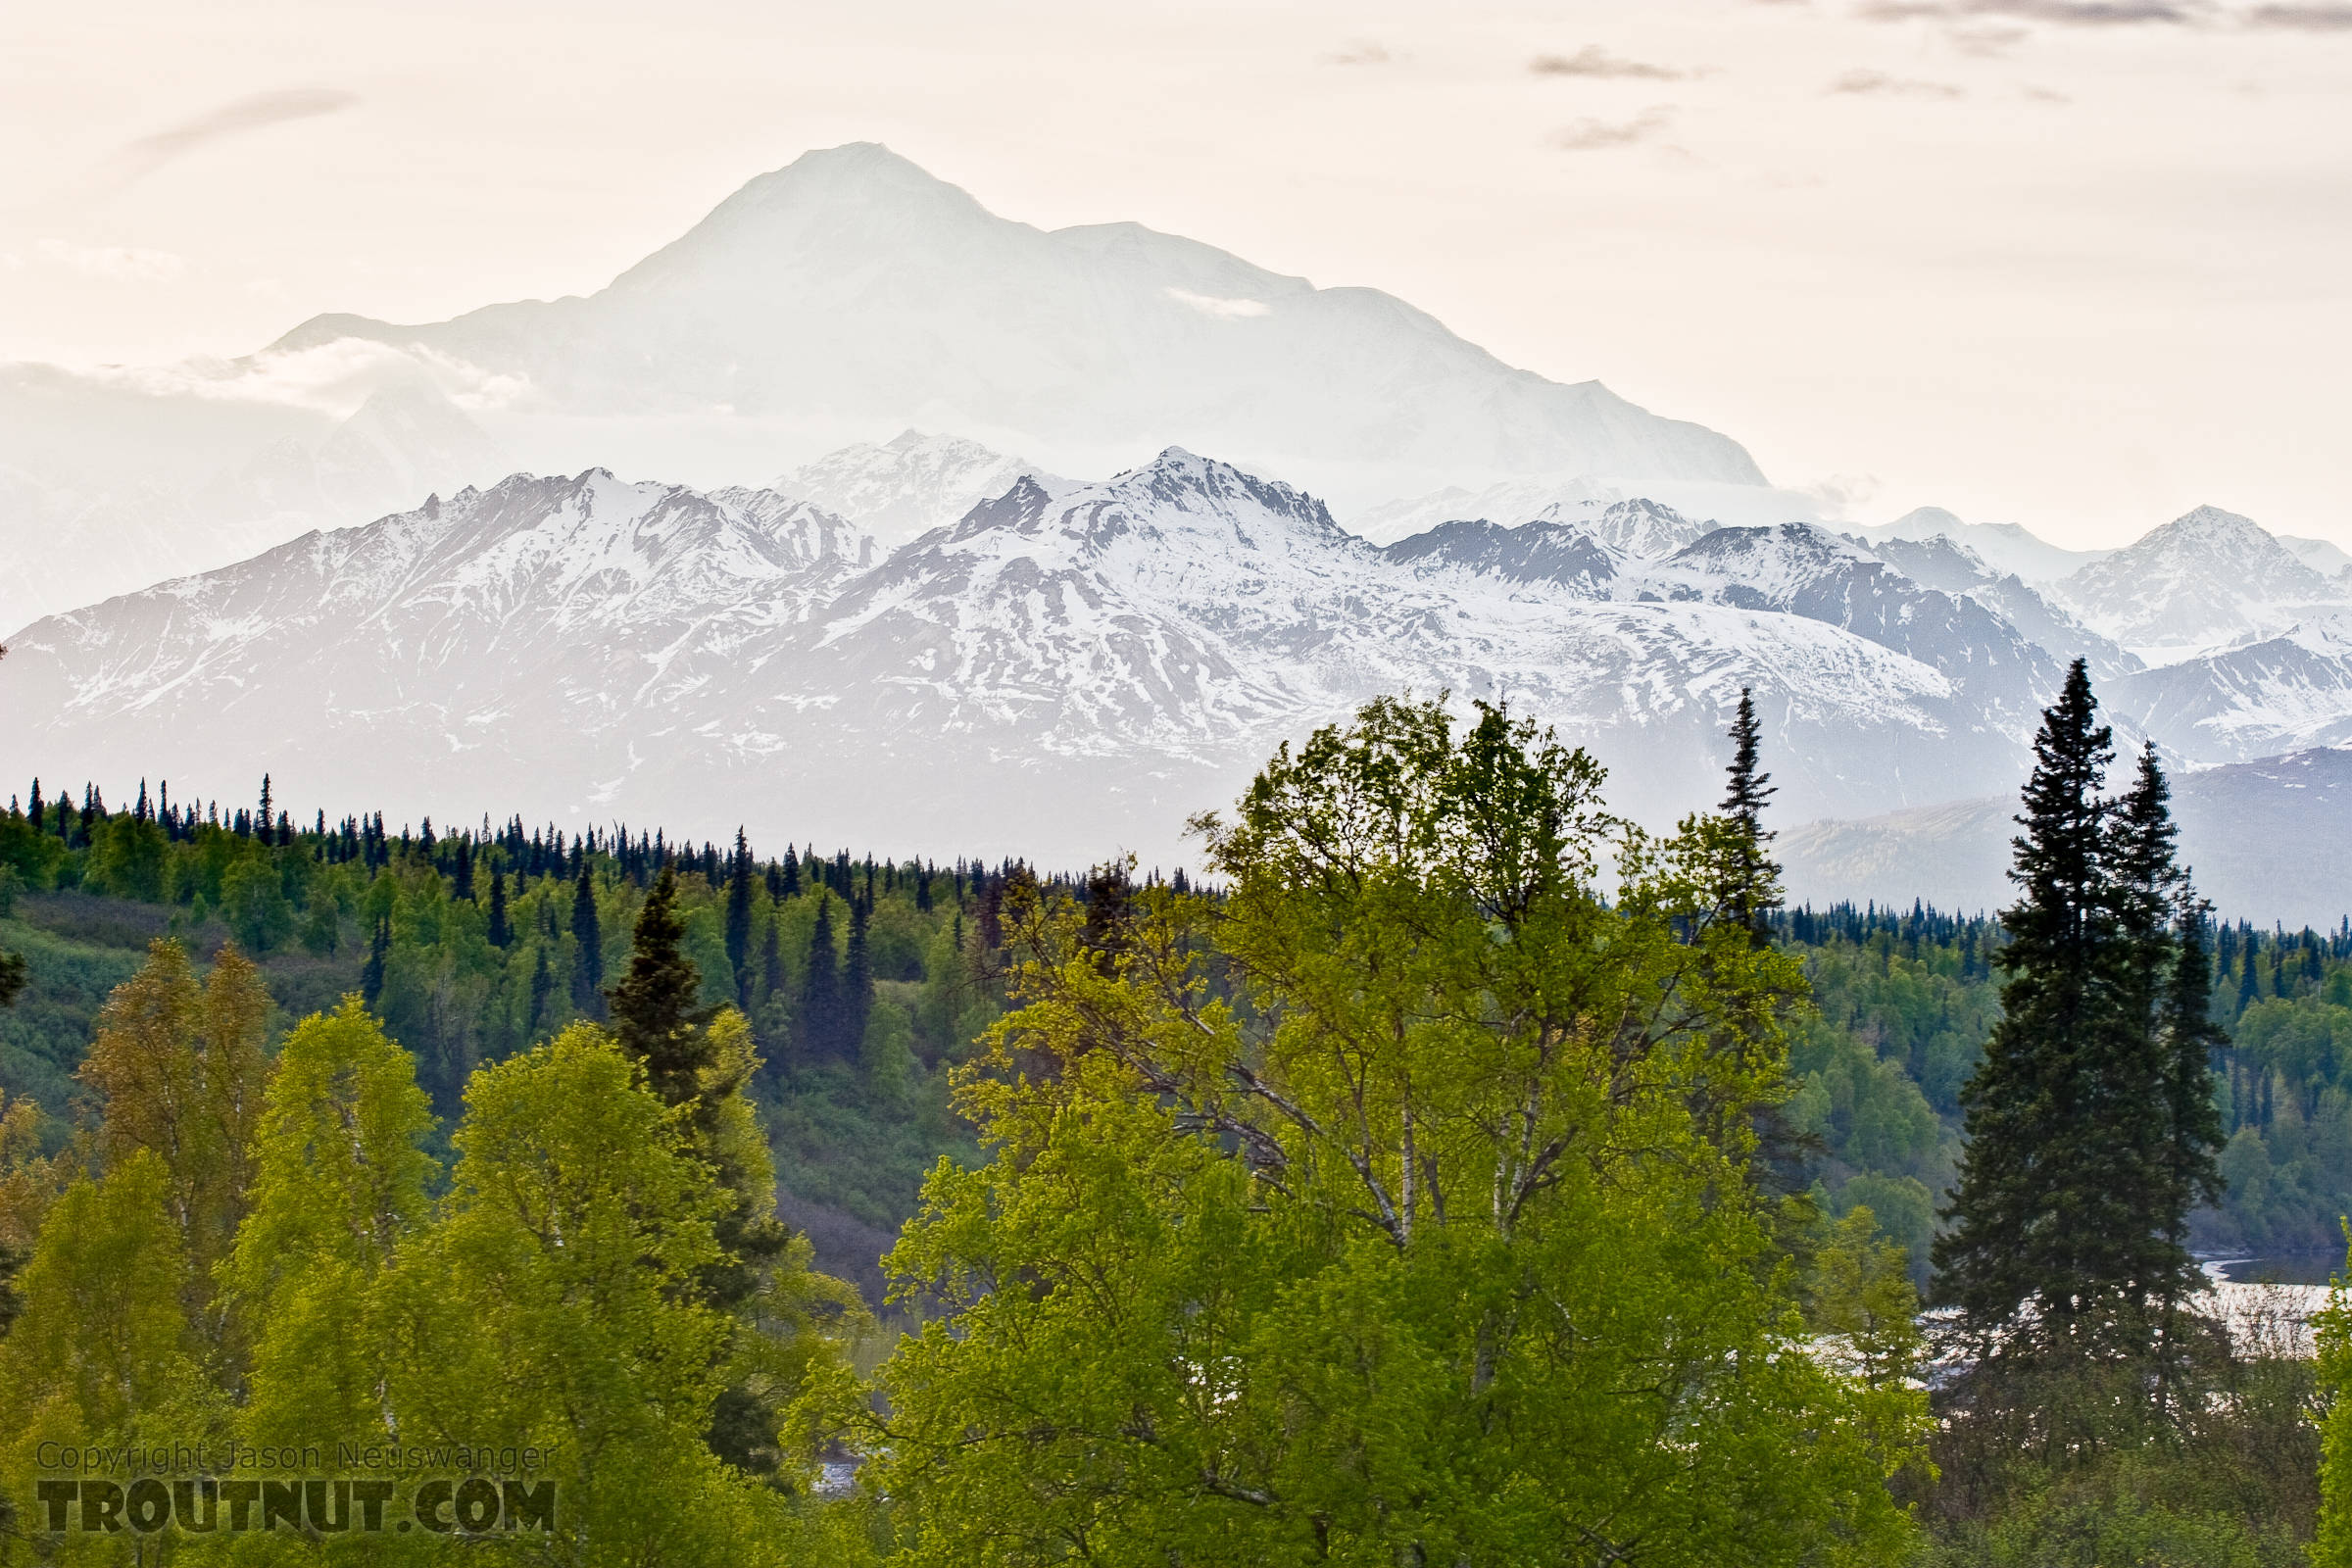 Denali in the background, towering over the rest of the Alaska Range and the Chulitna River in the foreground. From Parks Highway in Alaska.